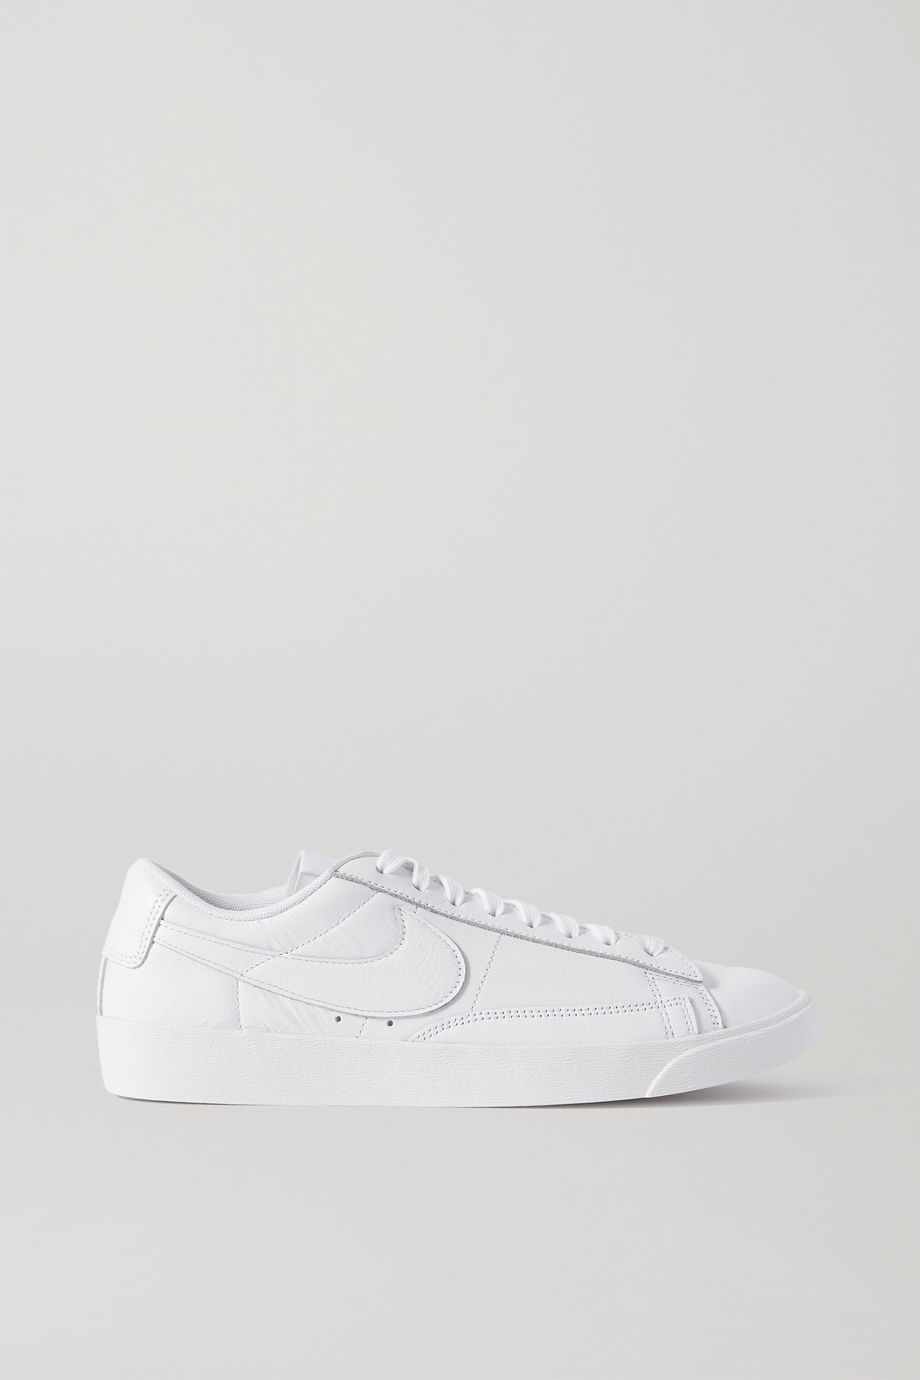 Nike Blazer Low leather sneakers